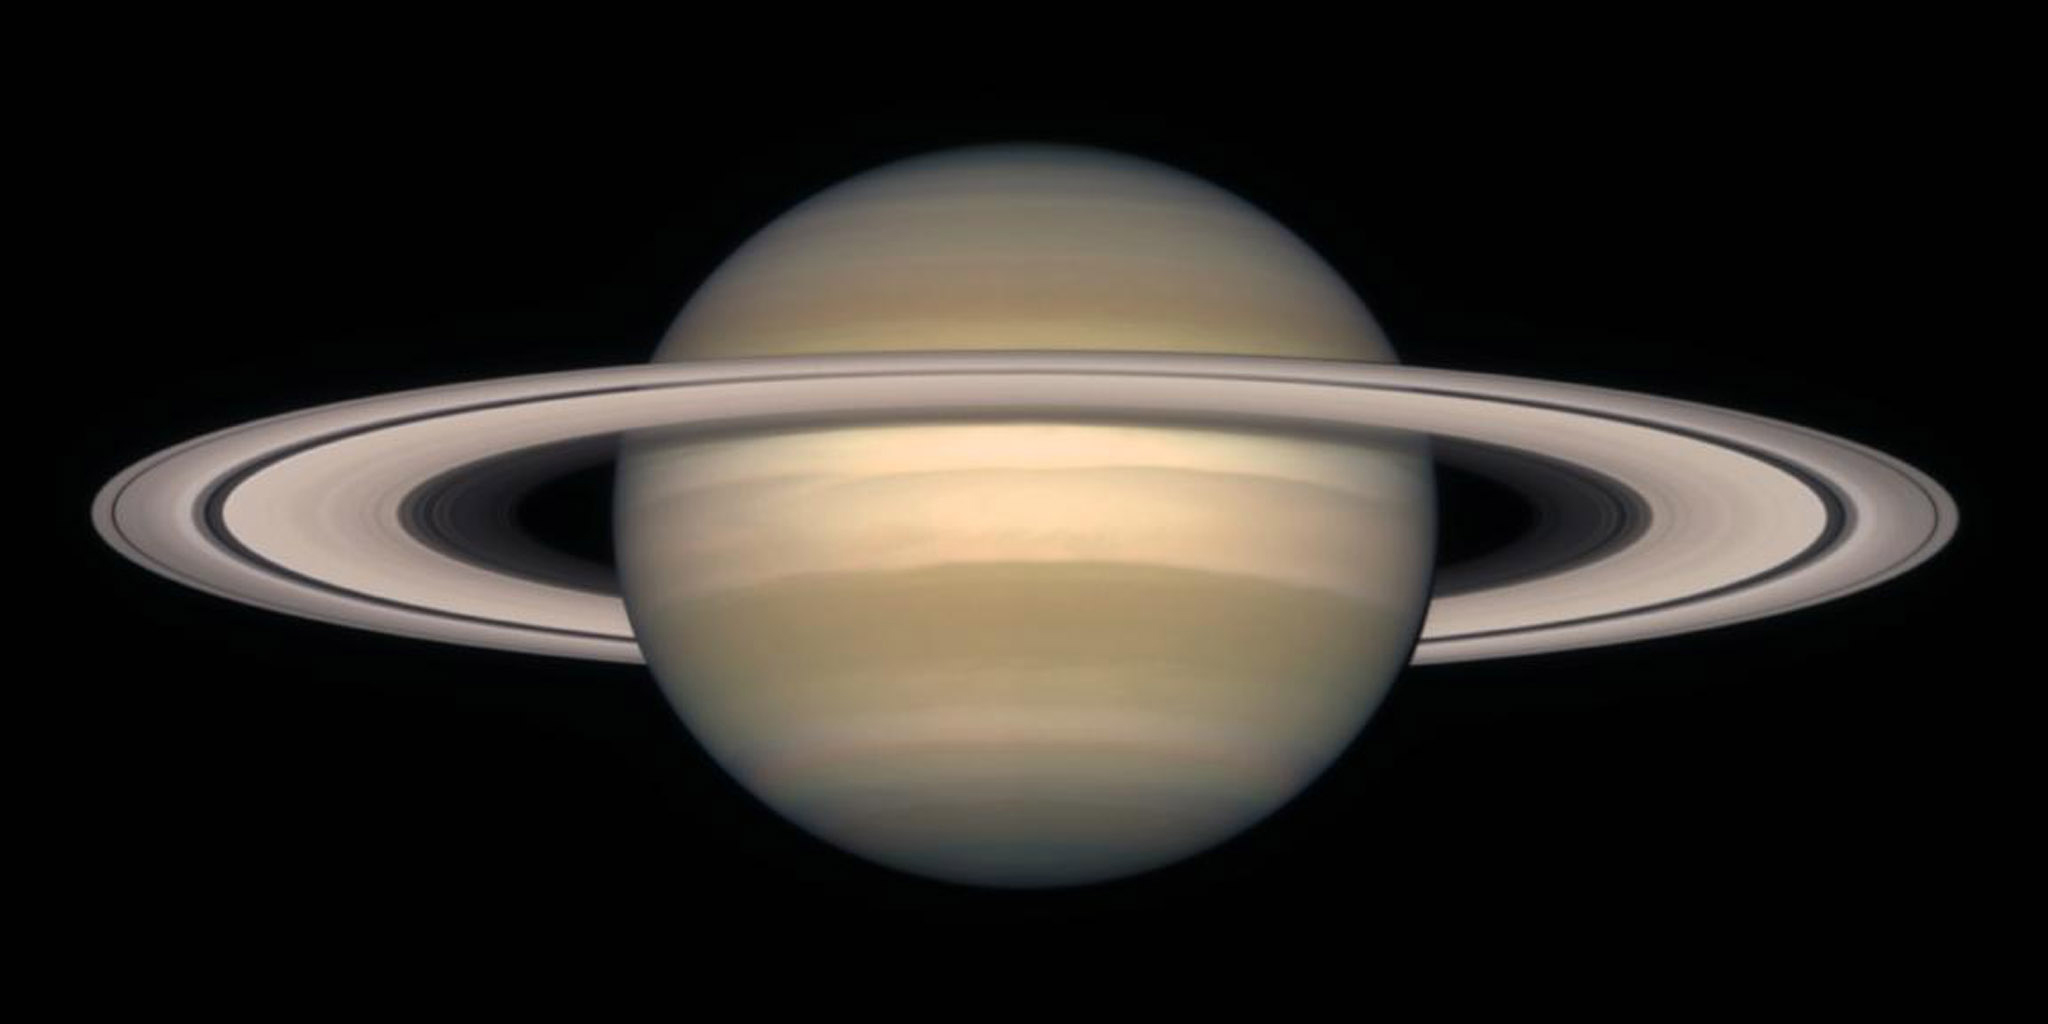 Space Images A Change Of Seasons On Saturn October 1997